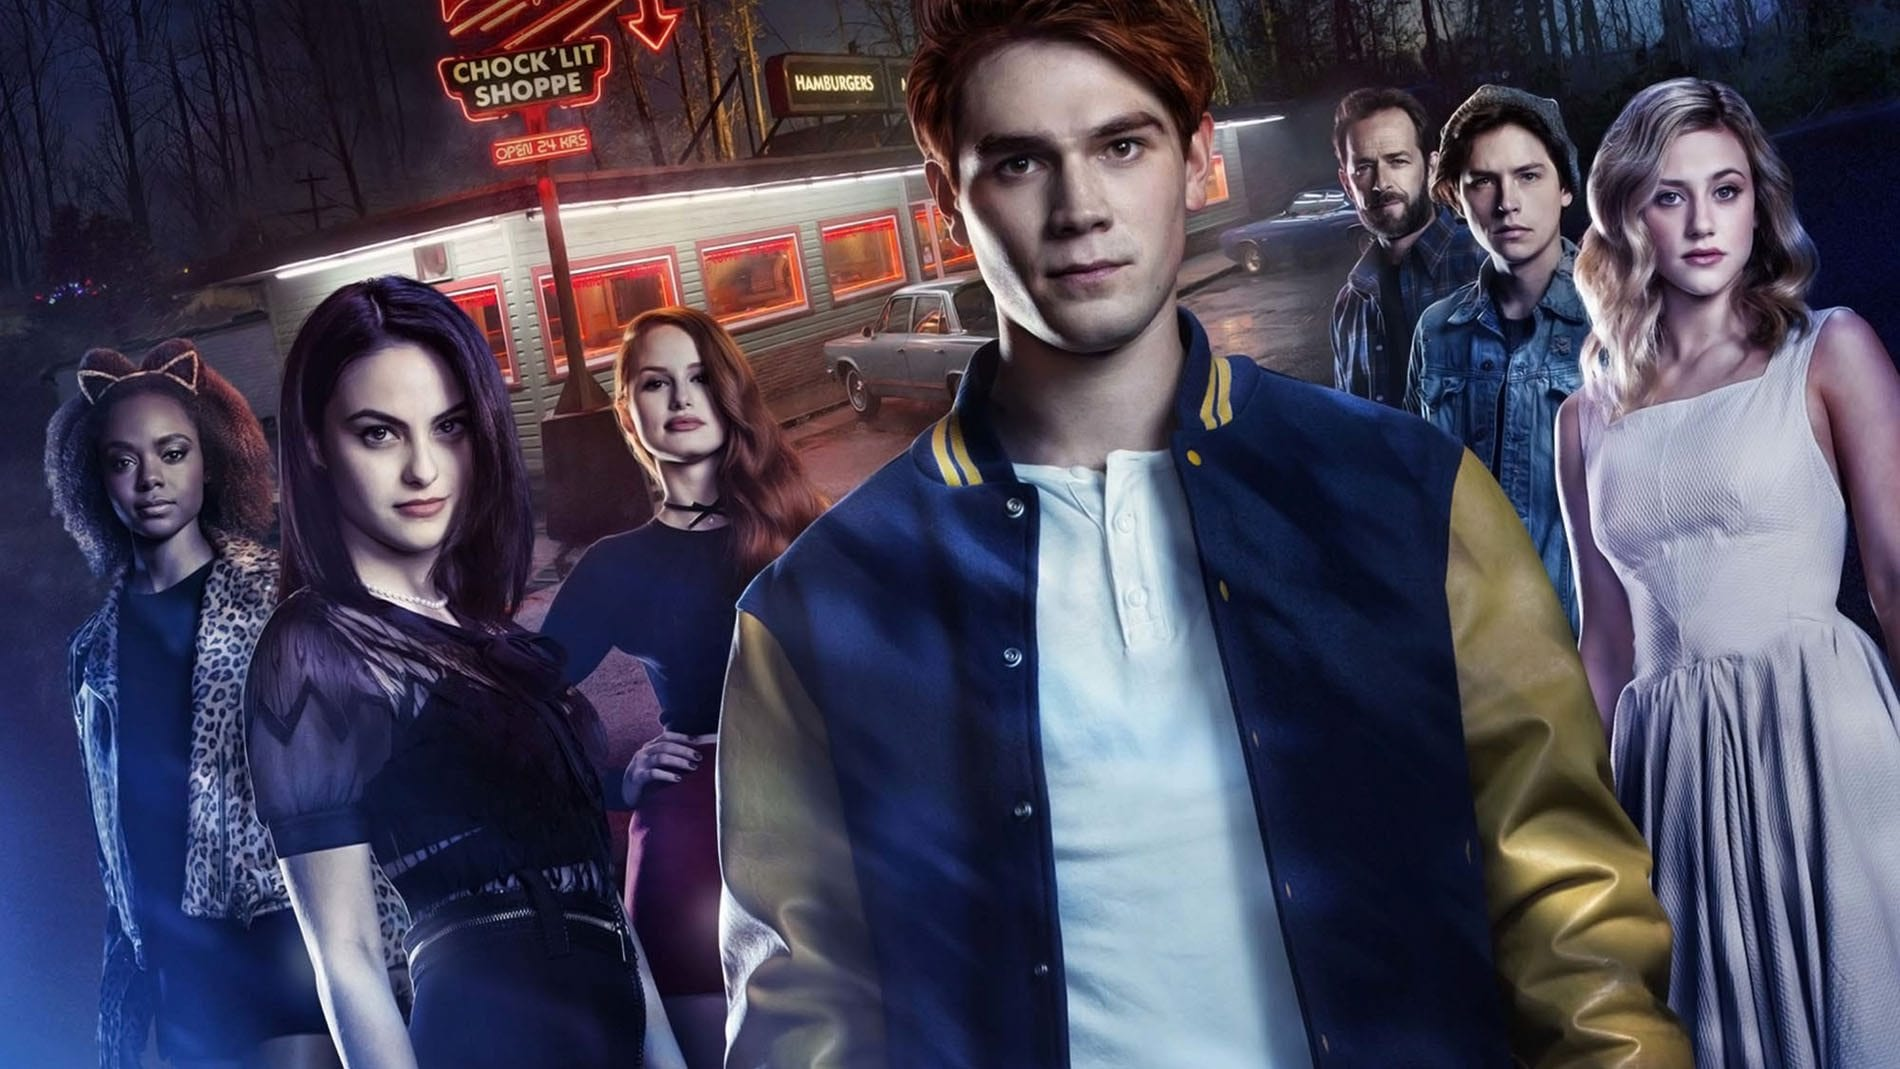 Riverdale may look like a quiet, sleepy town, but there are dangers in the shadows. Check out the new trailers for 'Riverdale' season two now.